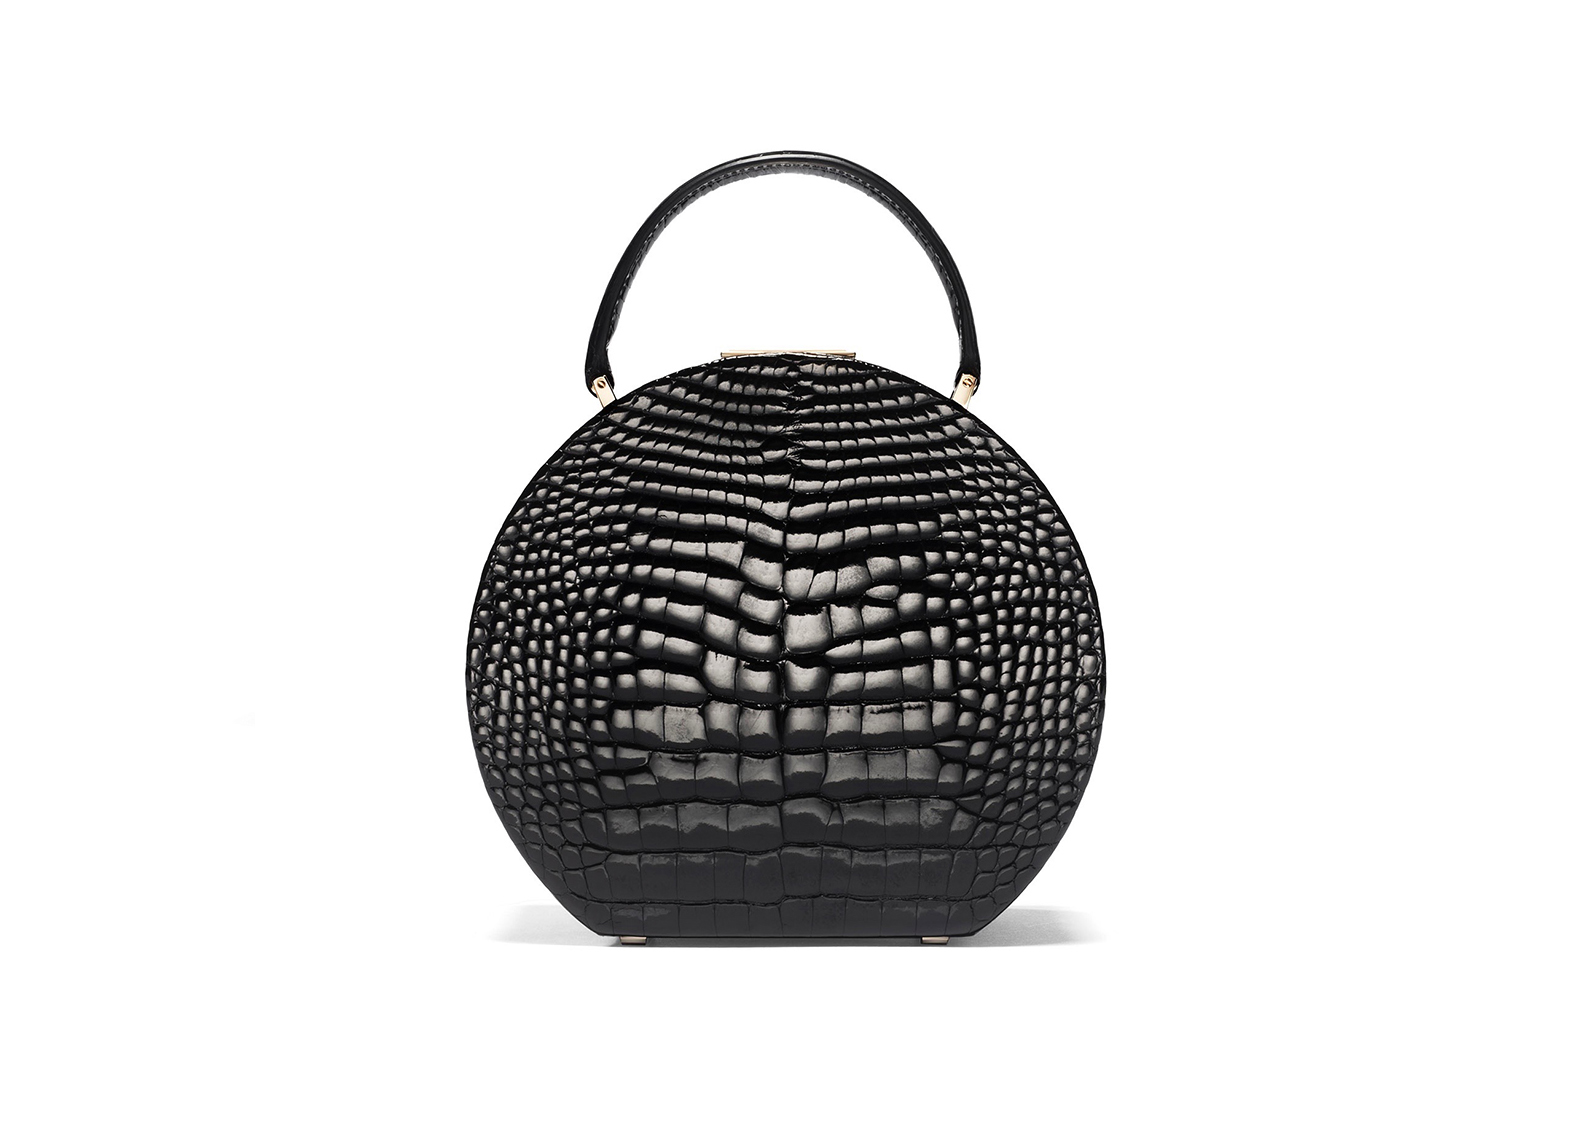 BUMI Alligator - Excusive in every grain. Discover the collection of Buwood alligator handbags.